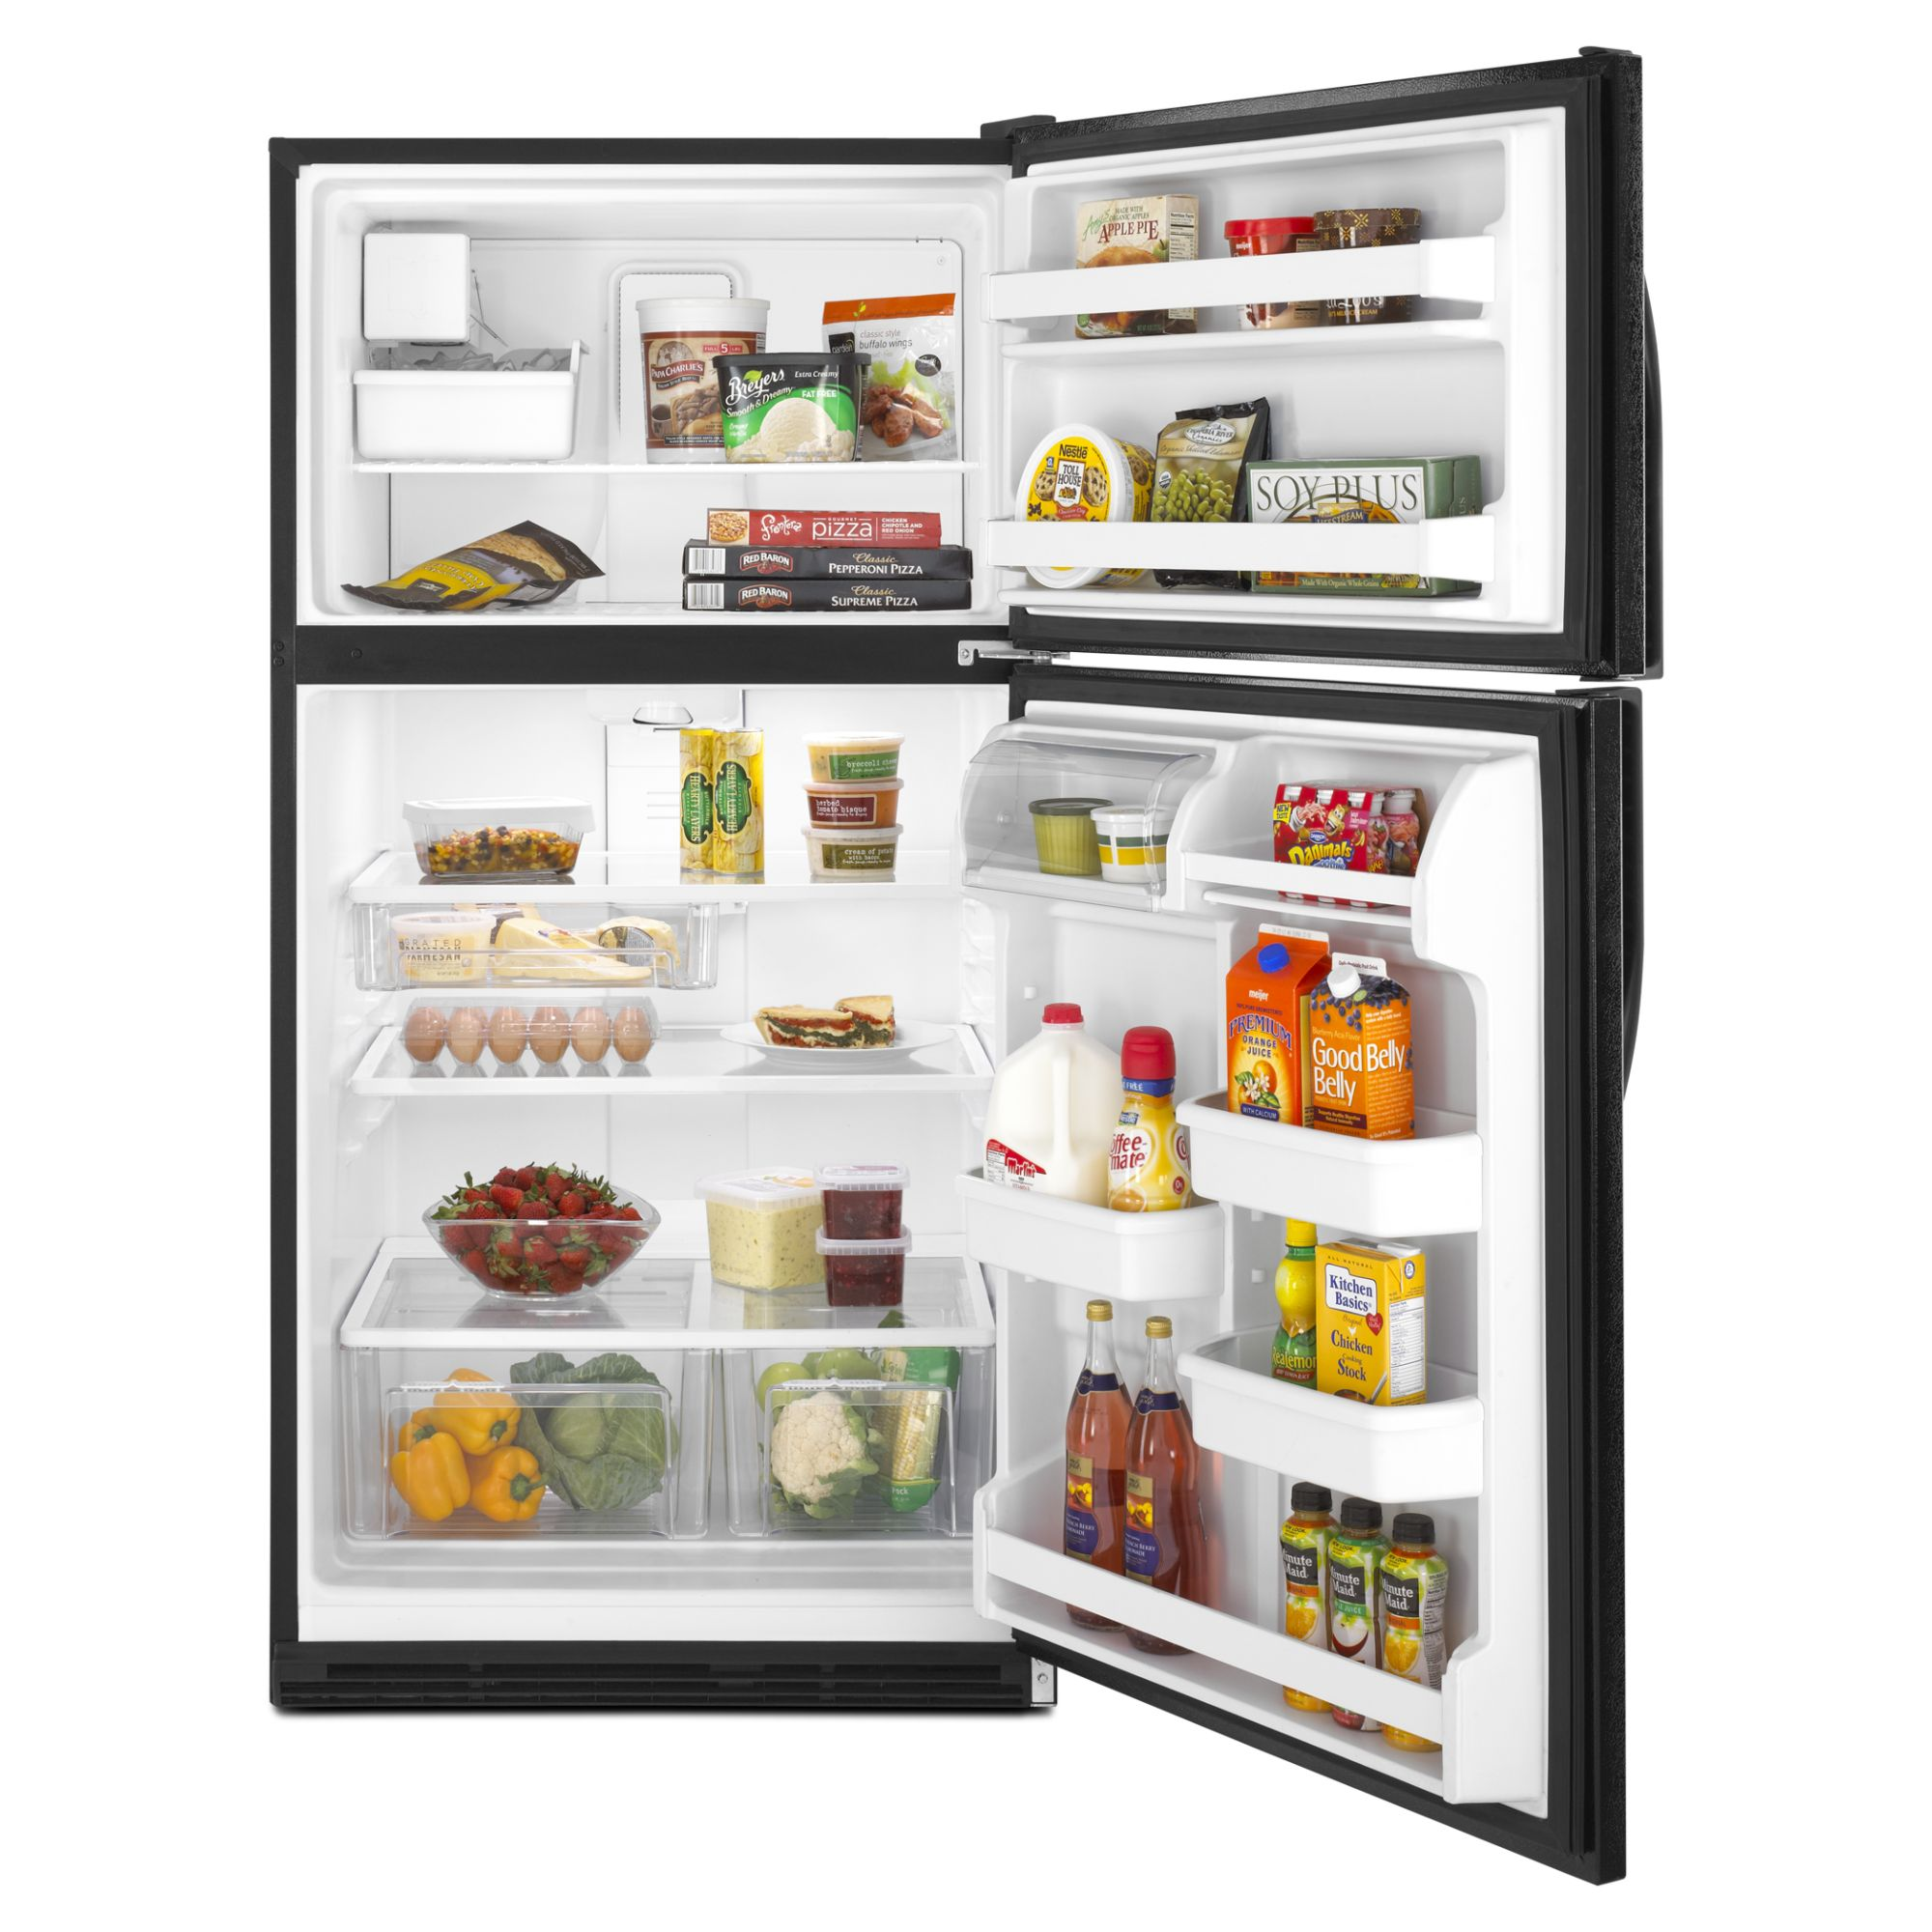 Kenmore 21.0 cu. ft. Top-Freezer Refrigerator w/ Ice Maker - Black